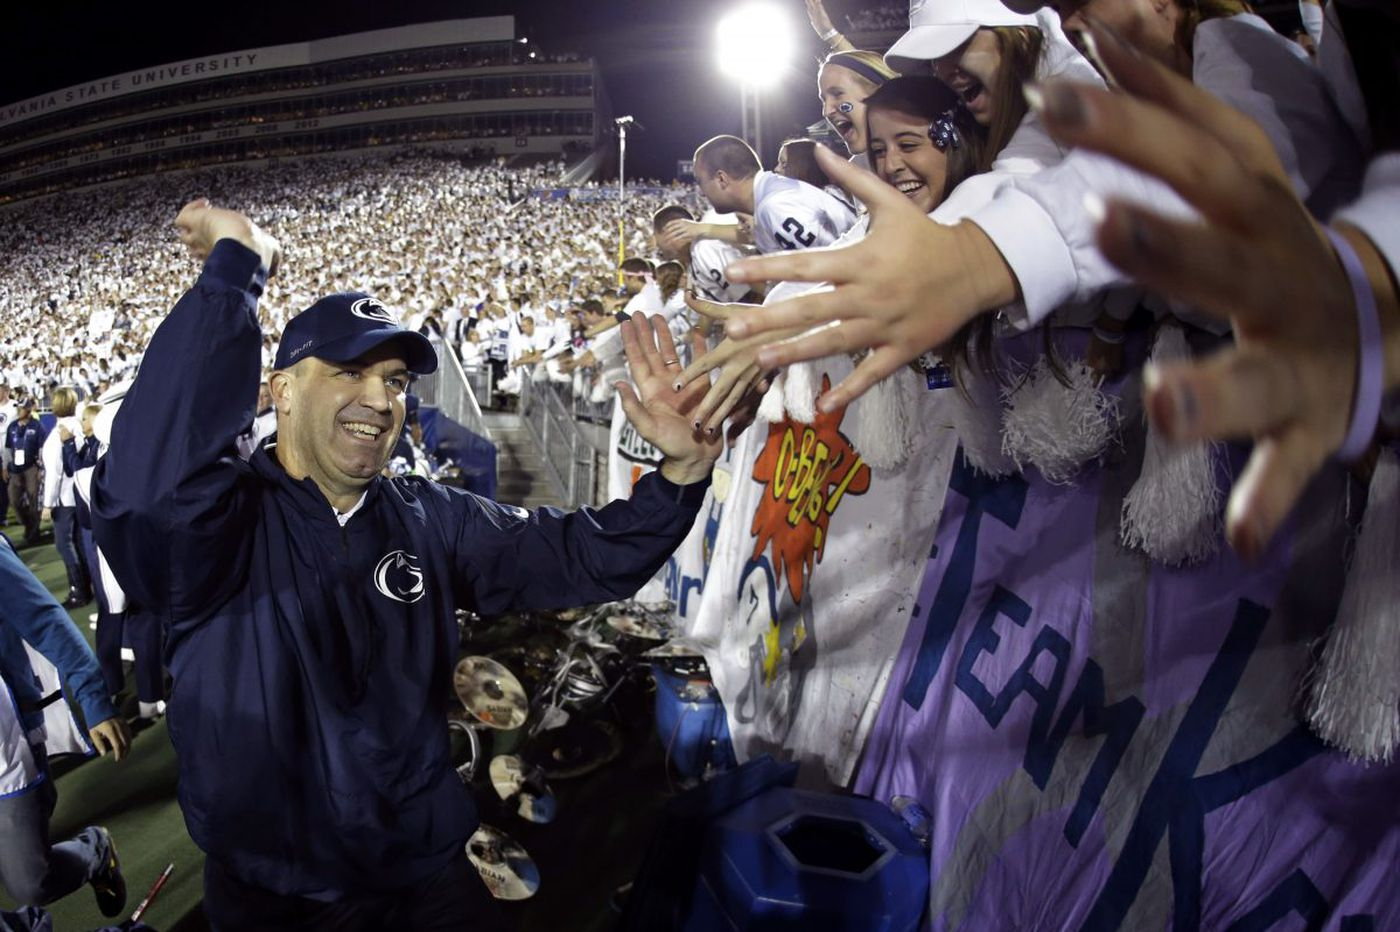 Bill O'Brien was back at Penn State's 'college football heaven'